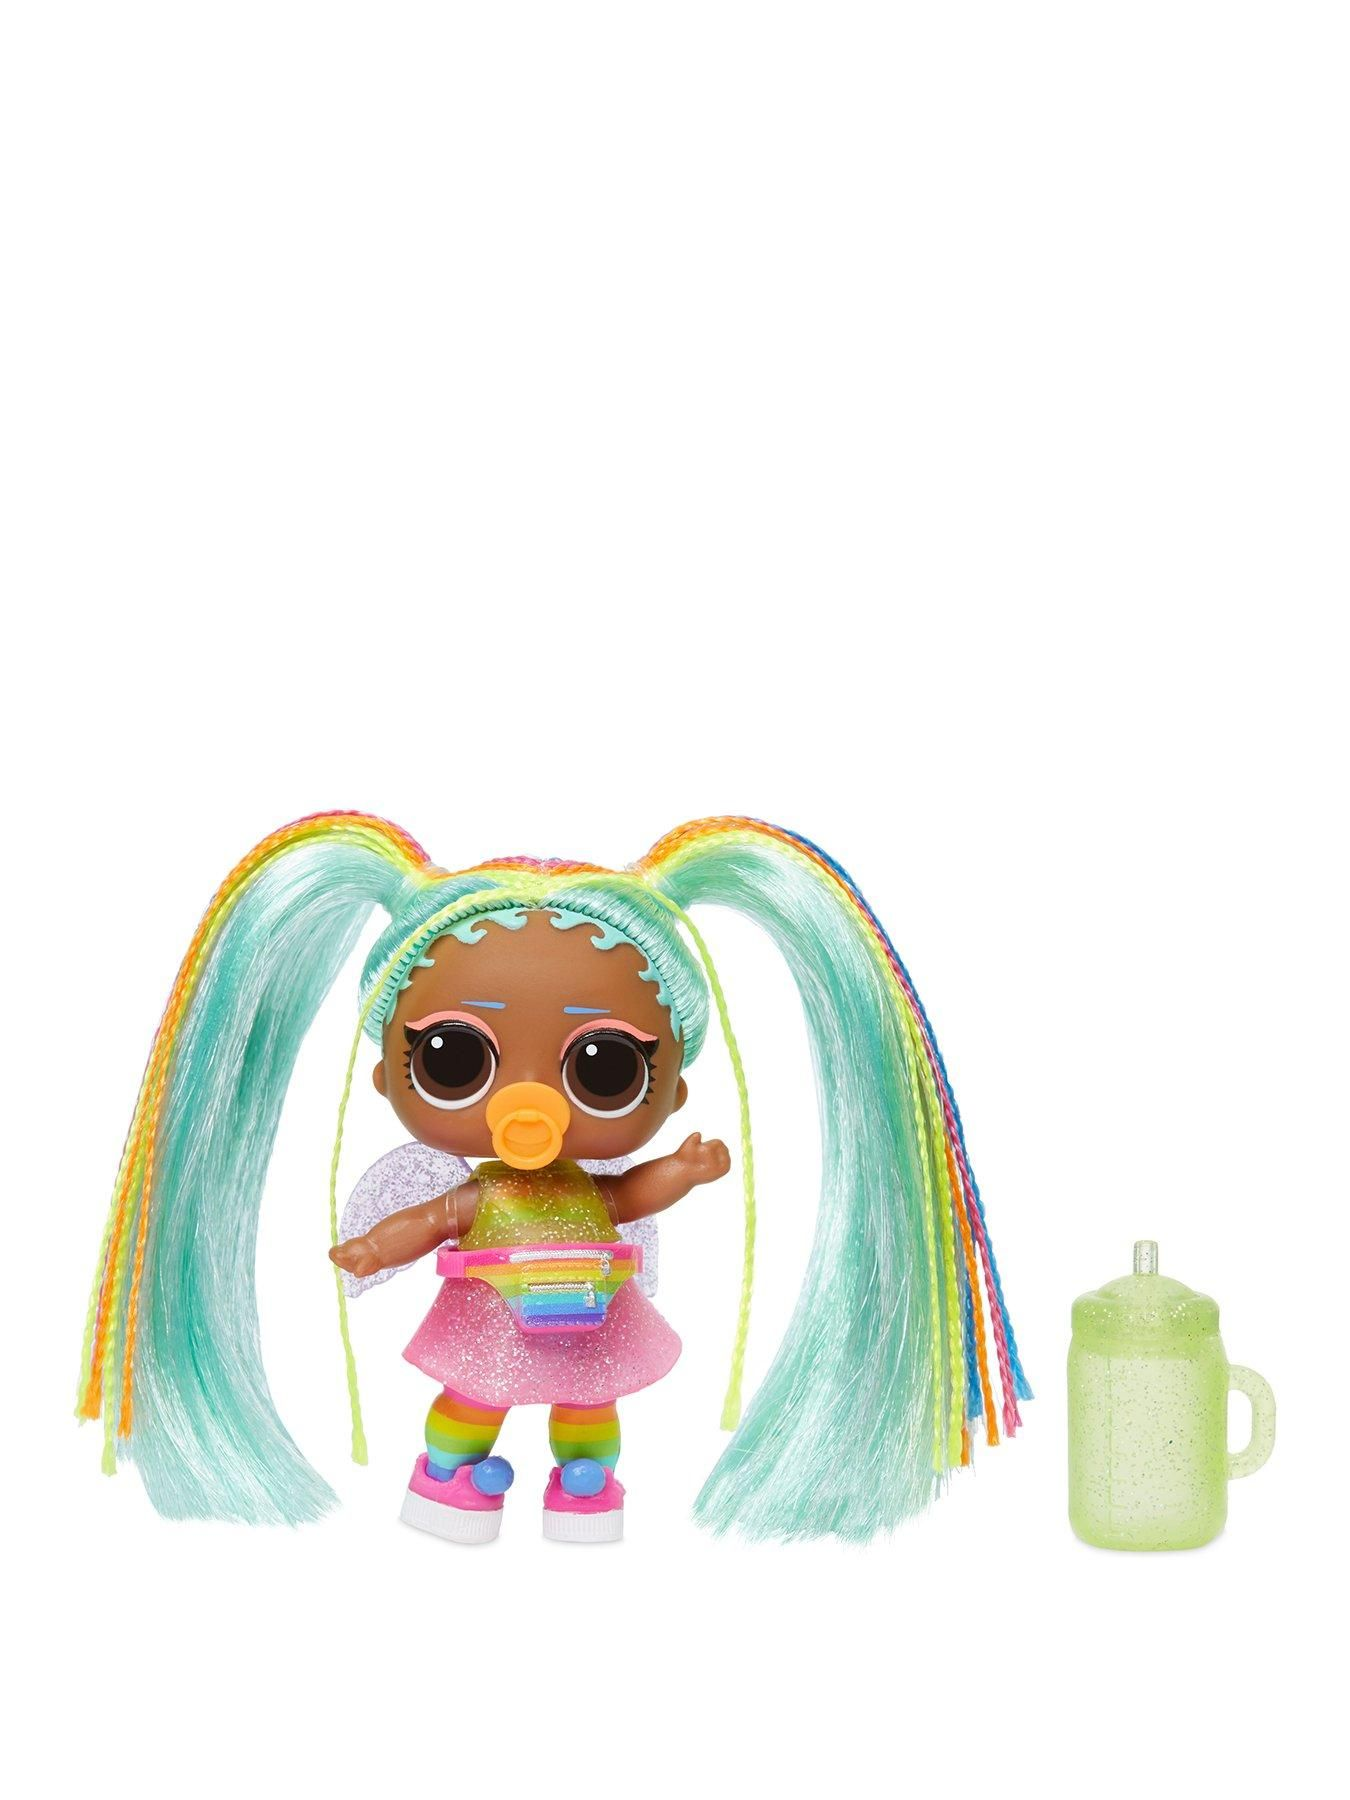 bb Baby #HairGoals Wave 2 Rainbow Hair Toy Real LOL Surprise Dolls VALLEY B.B